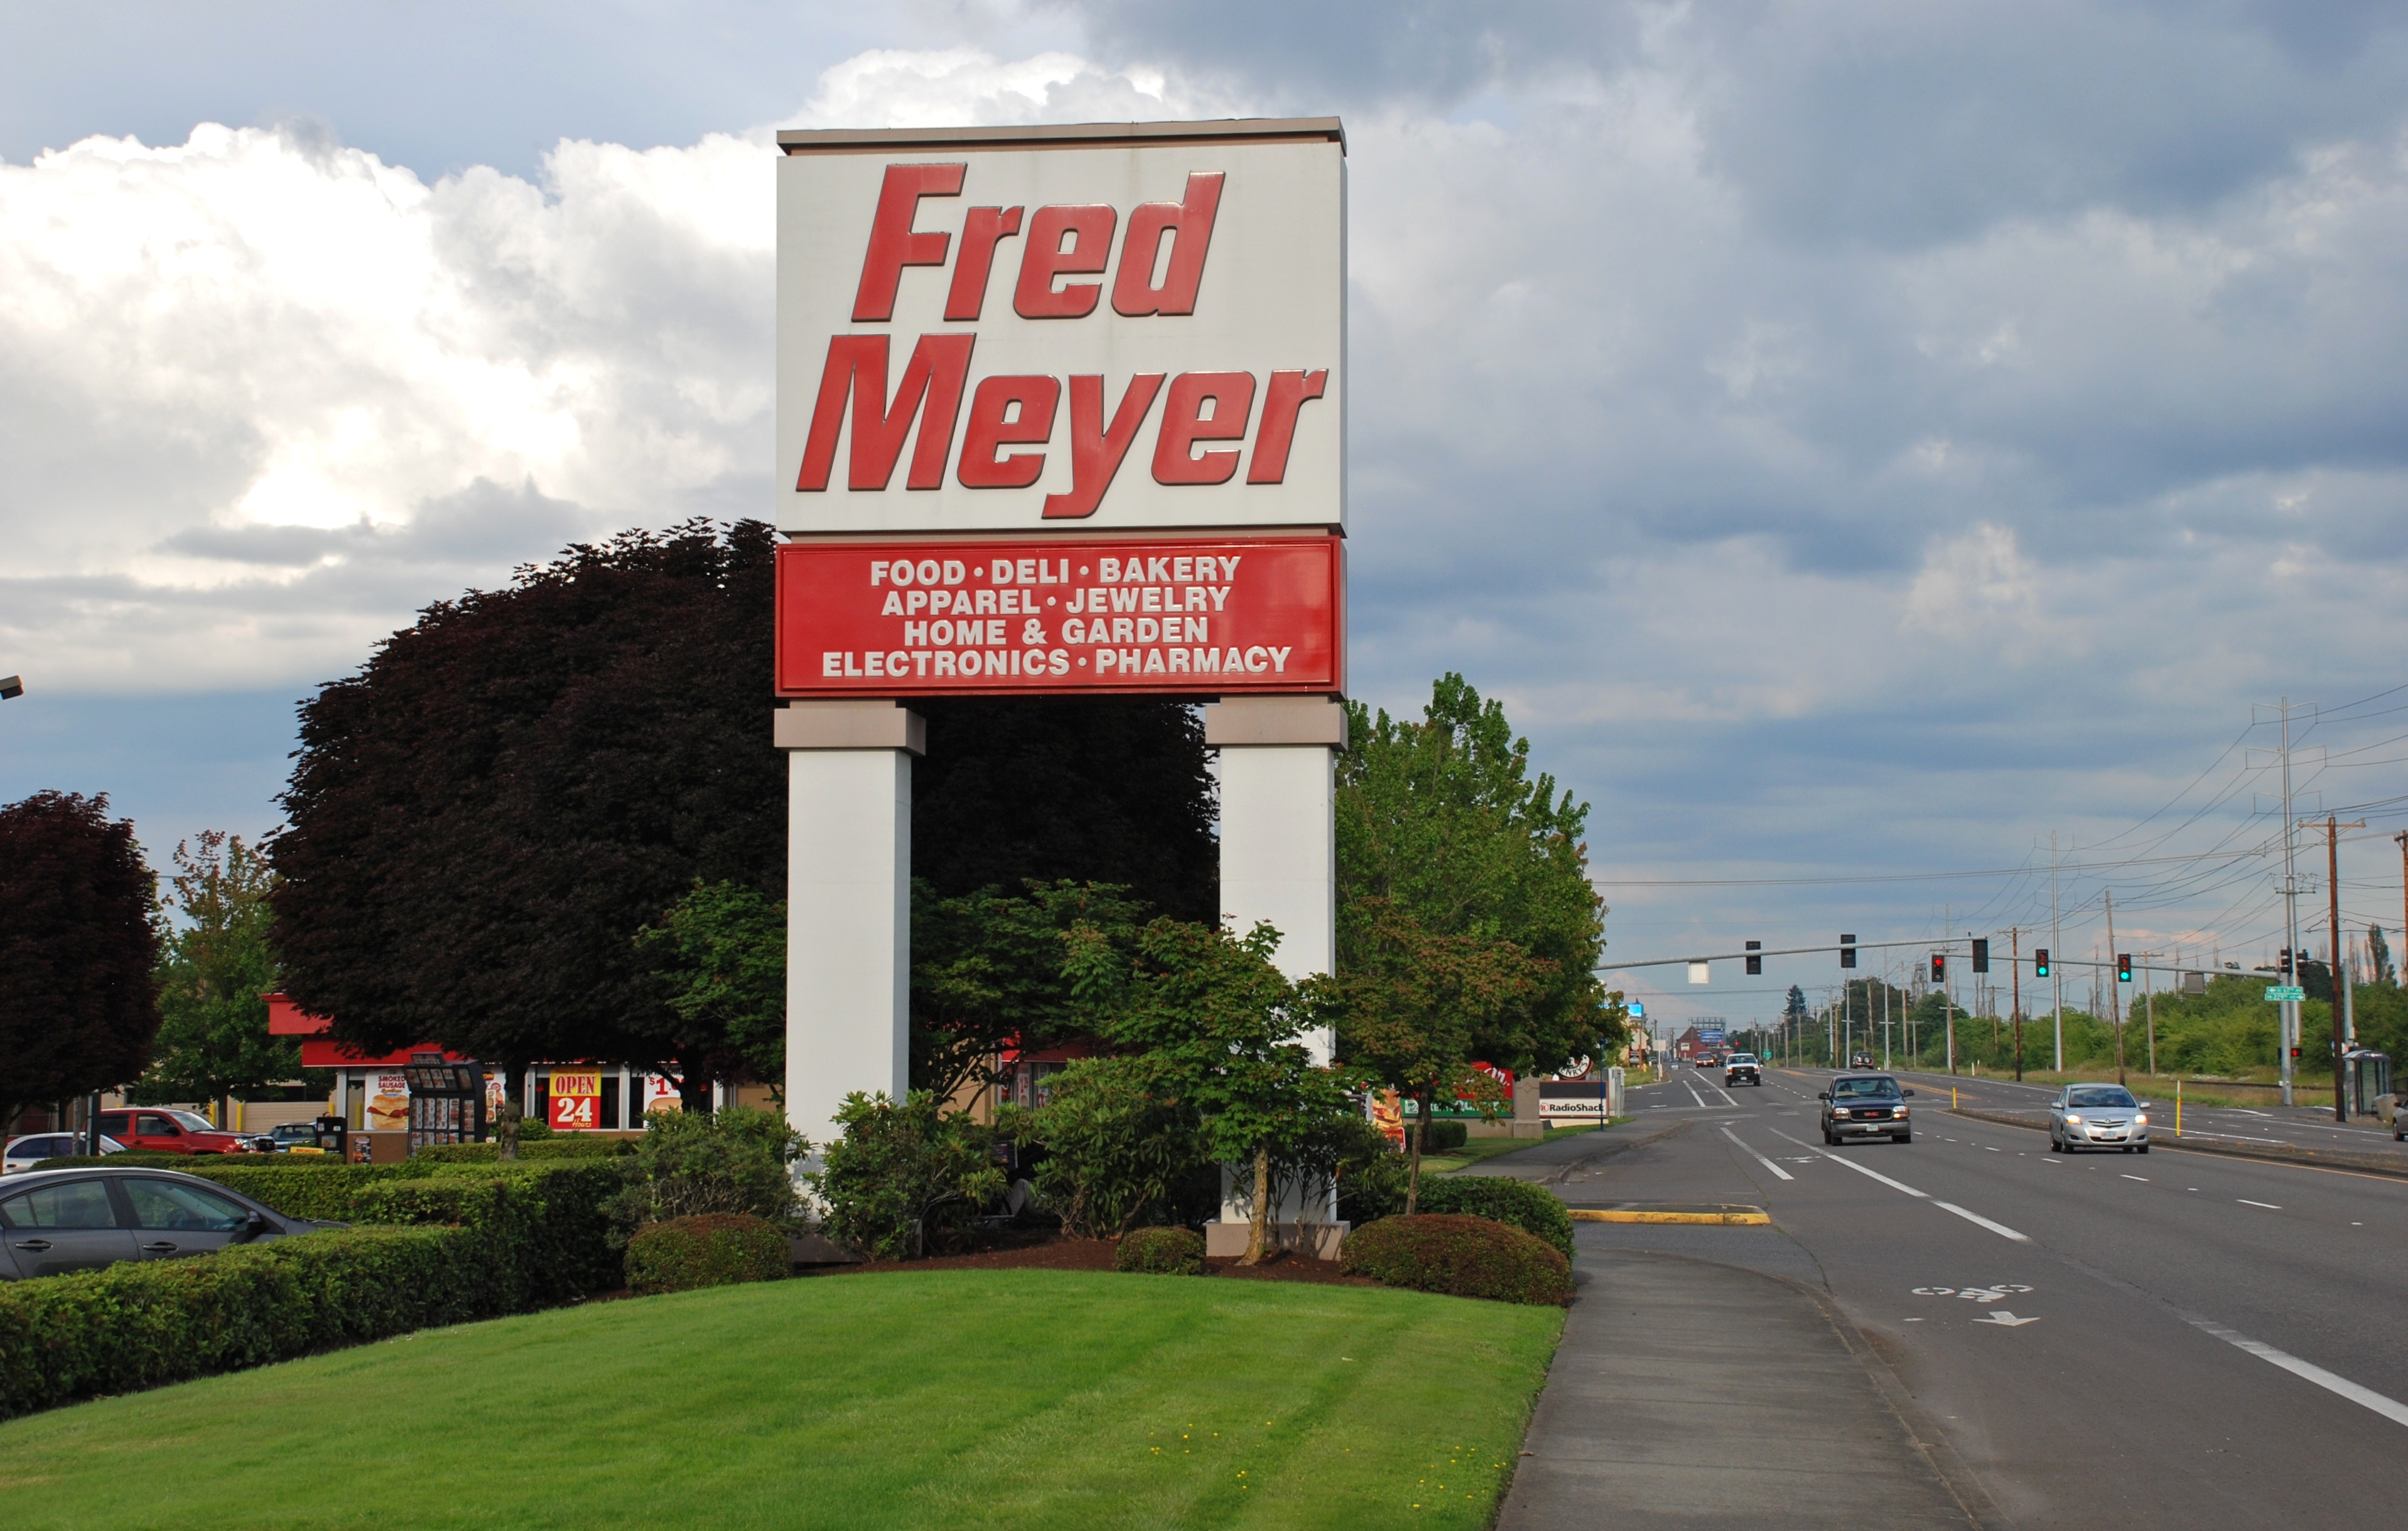 File:Hillsboro Fred Meyer Store Sign With TV Highway, 2013